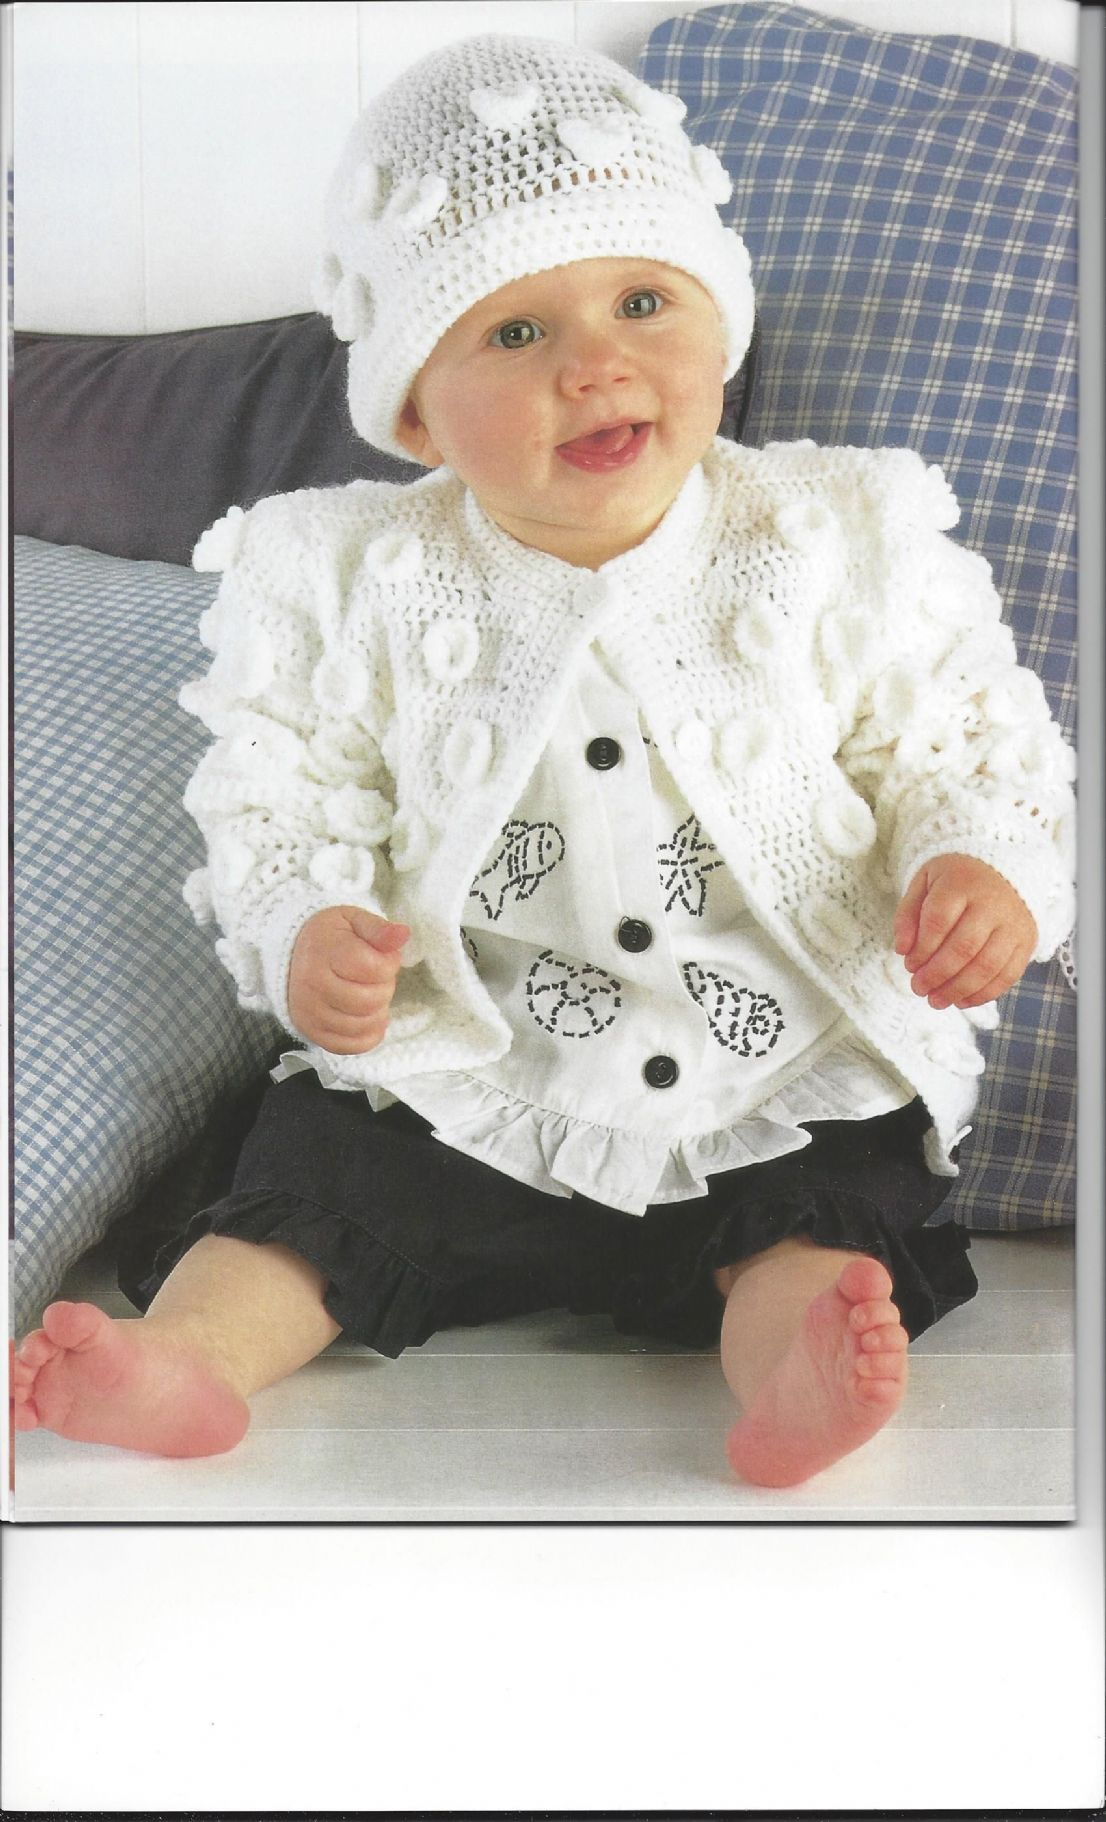 Sirdar Book 269 - Babies in Crochet - Sirdar Snuggly Double Knit & 4-ply